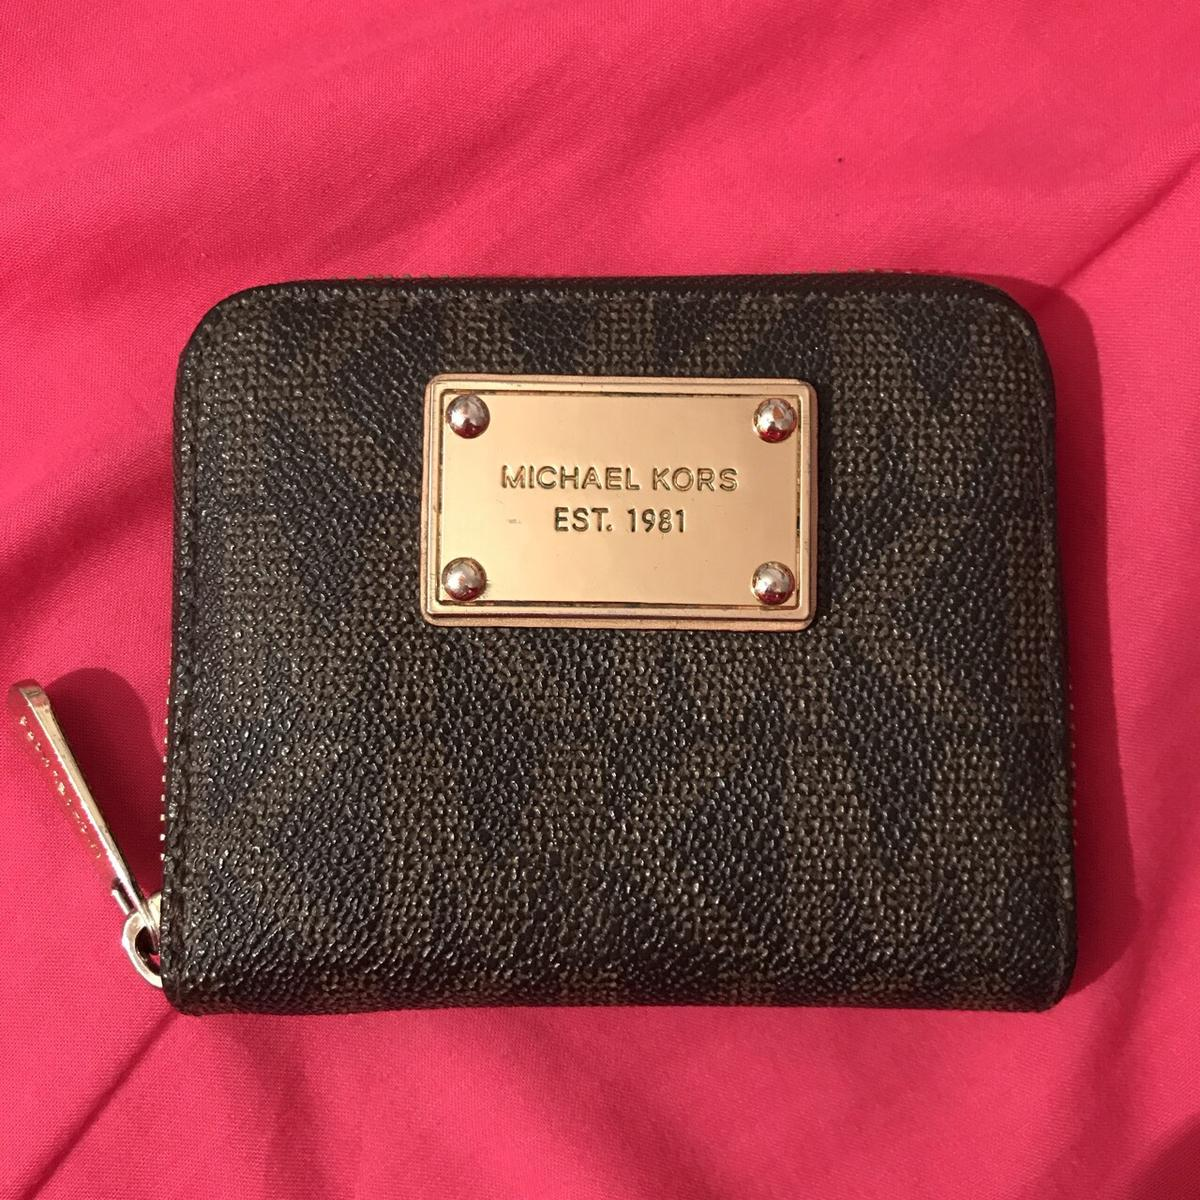 c5b6650050026d Michael kors purse in CR4 London for £28.00 for sale - Shpock